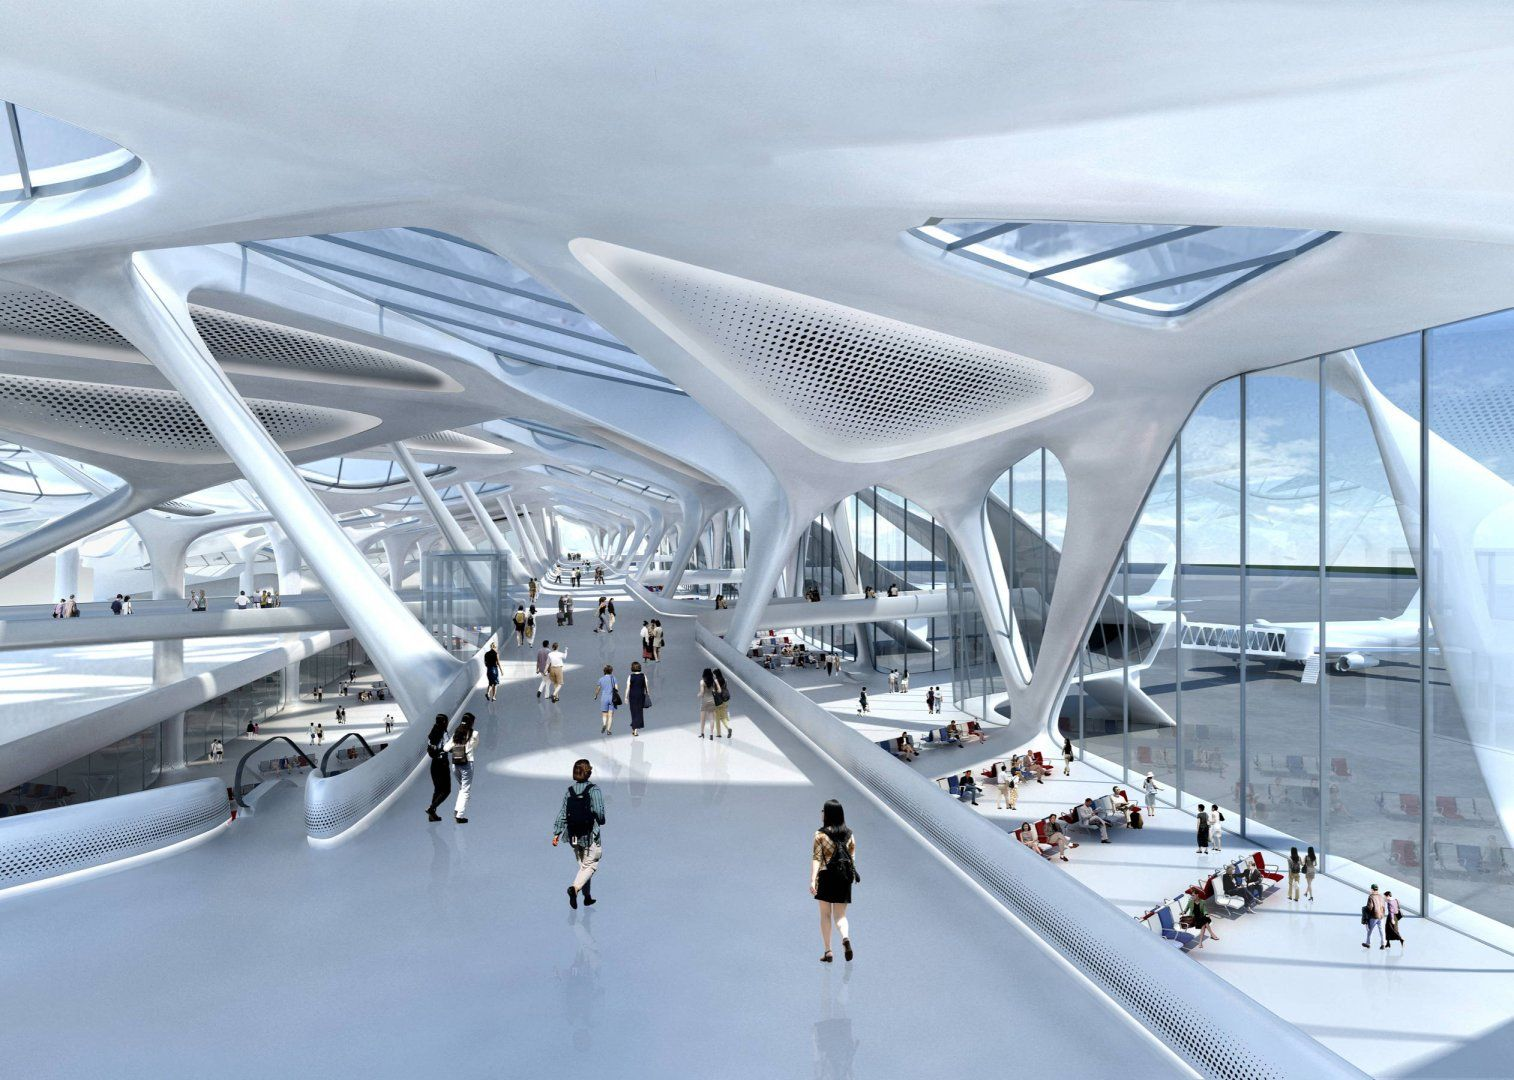 New Passenger Terminal And Masterplan Zagreb Airport Masterplans Zaha Hadid Architects Zaha Hadid Airport Design Zaha Hadid Architecture